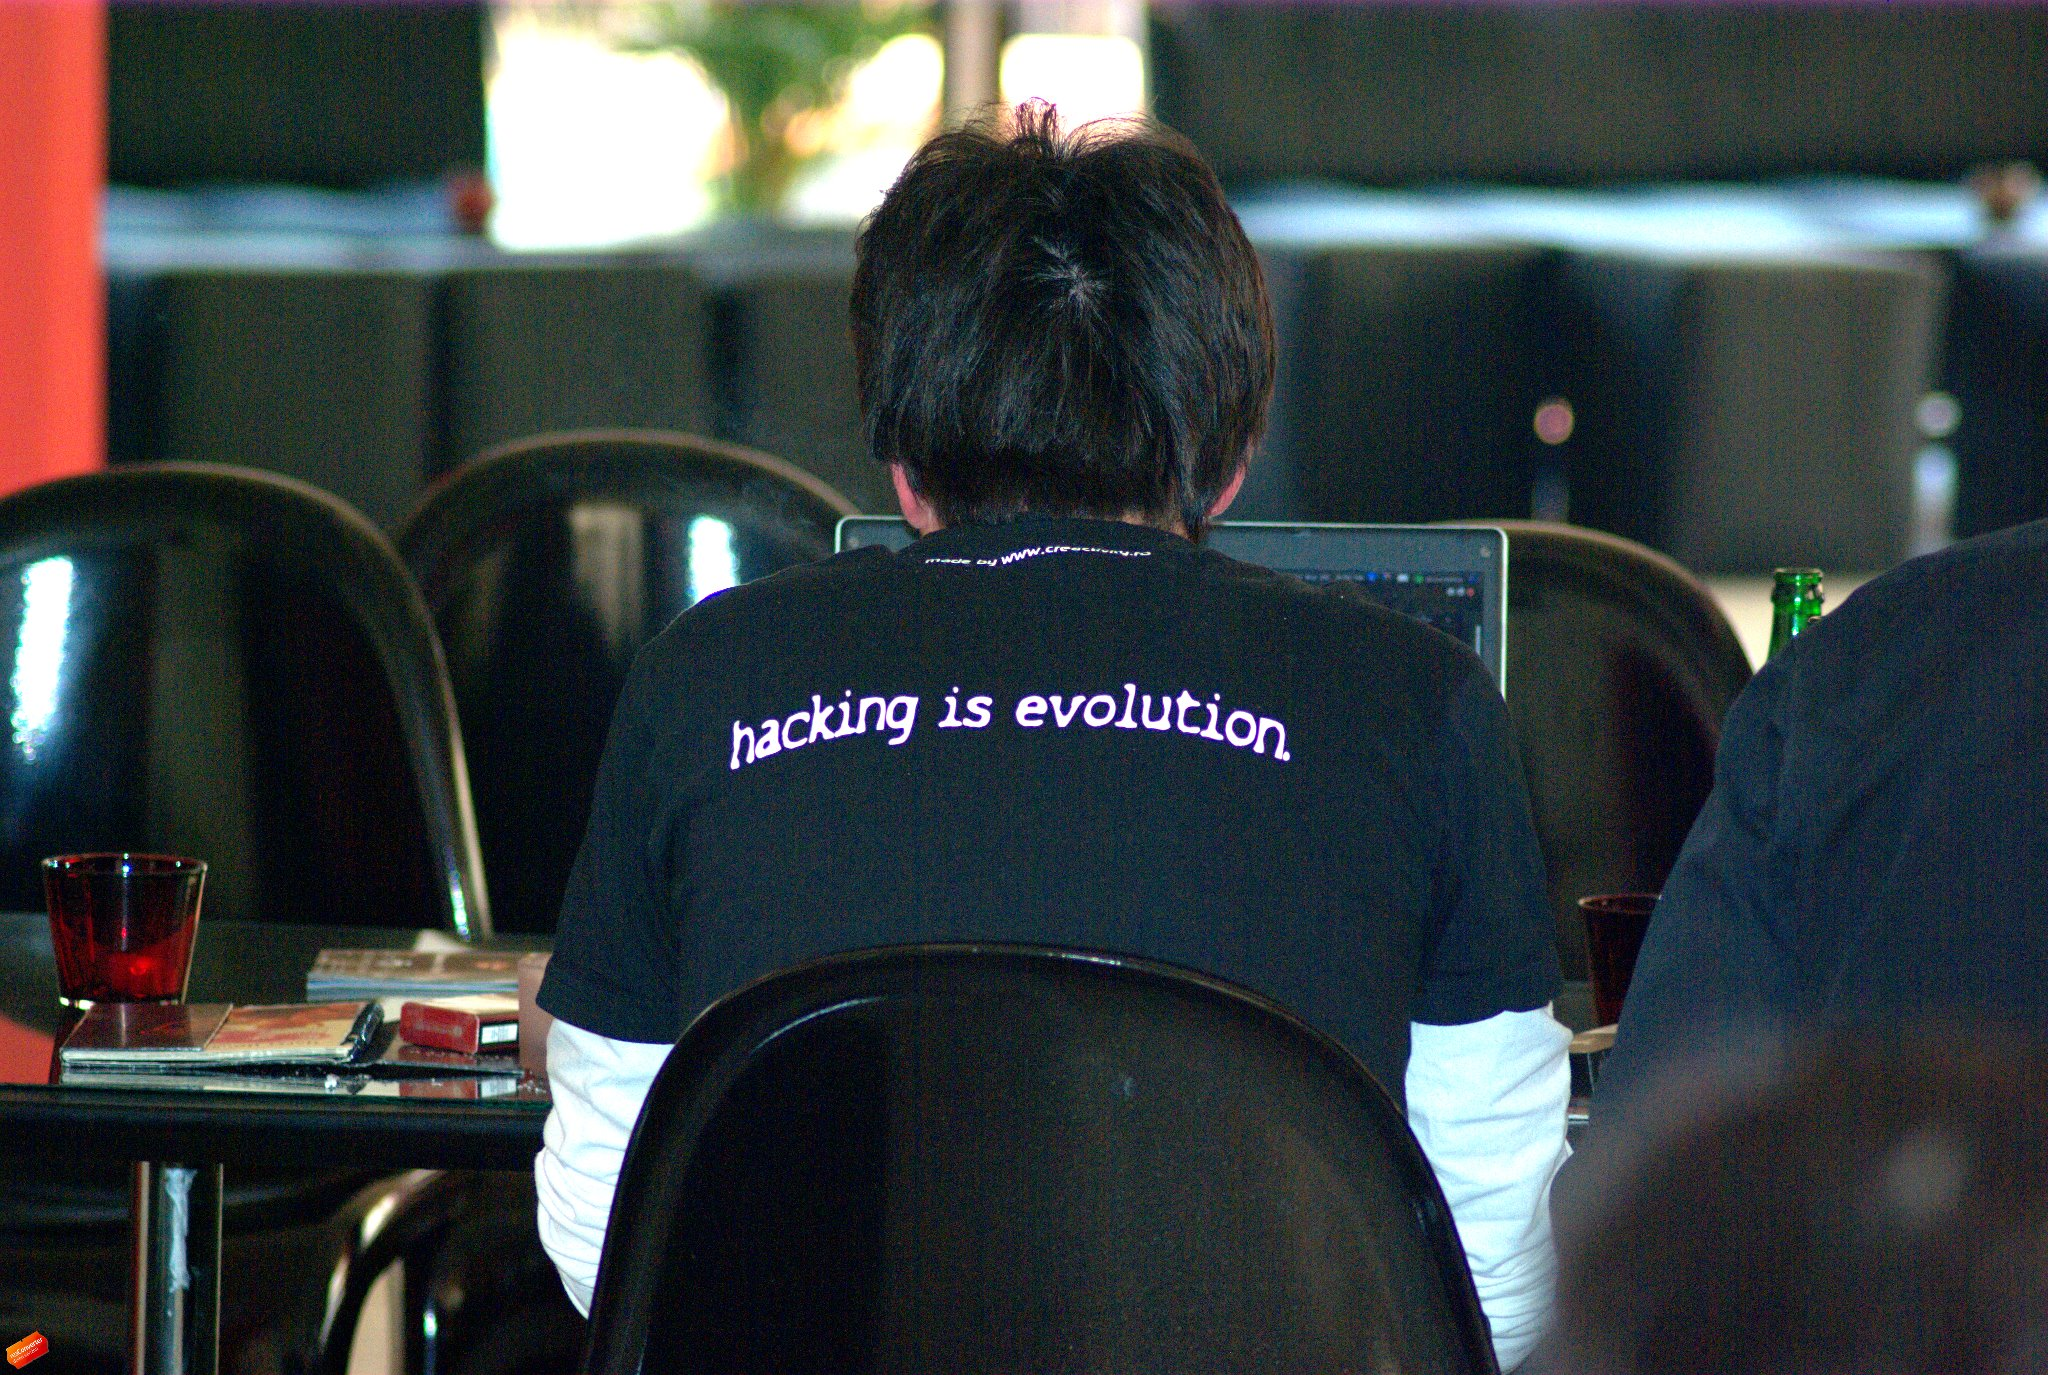 Hacking is evolution! Hacking is not a crime!